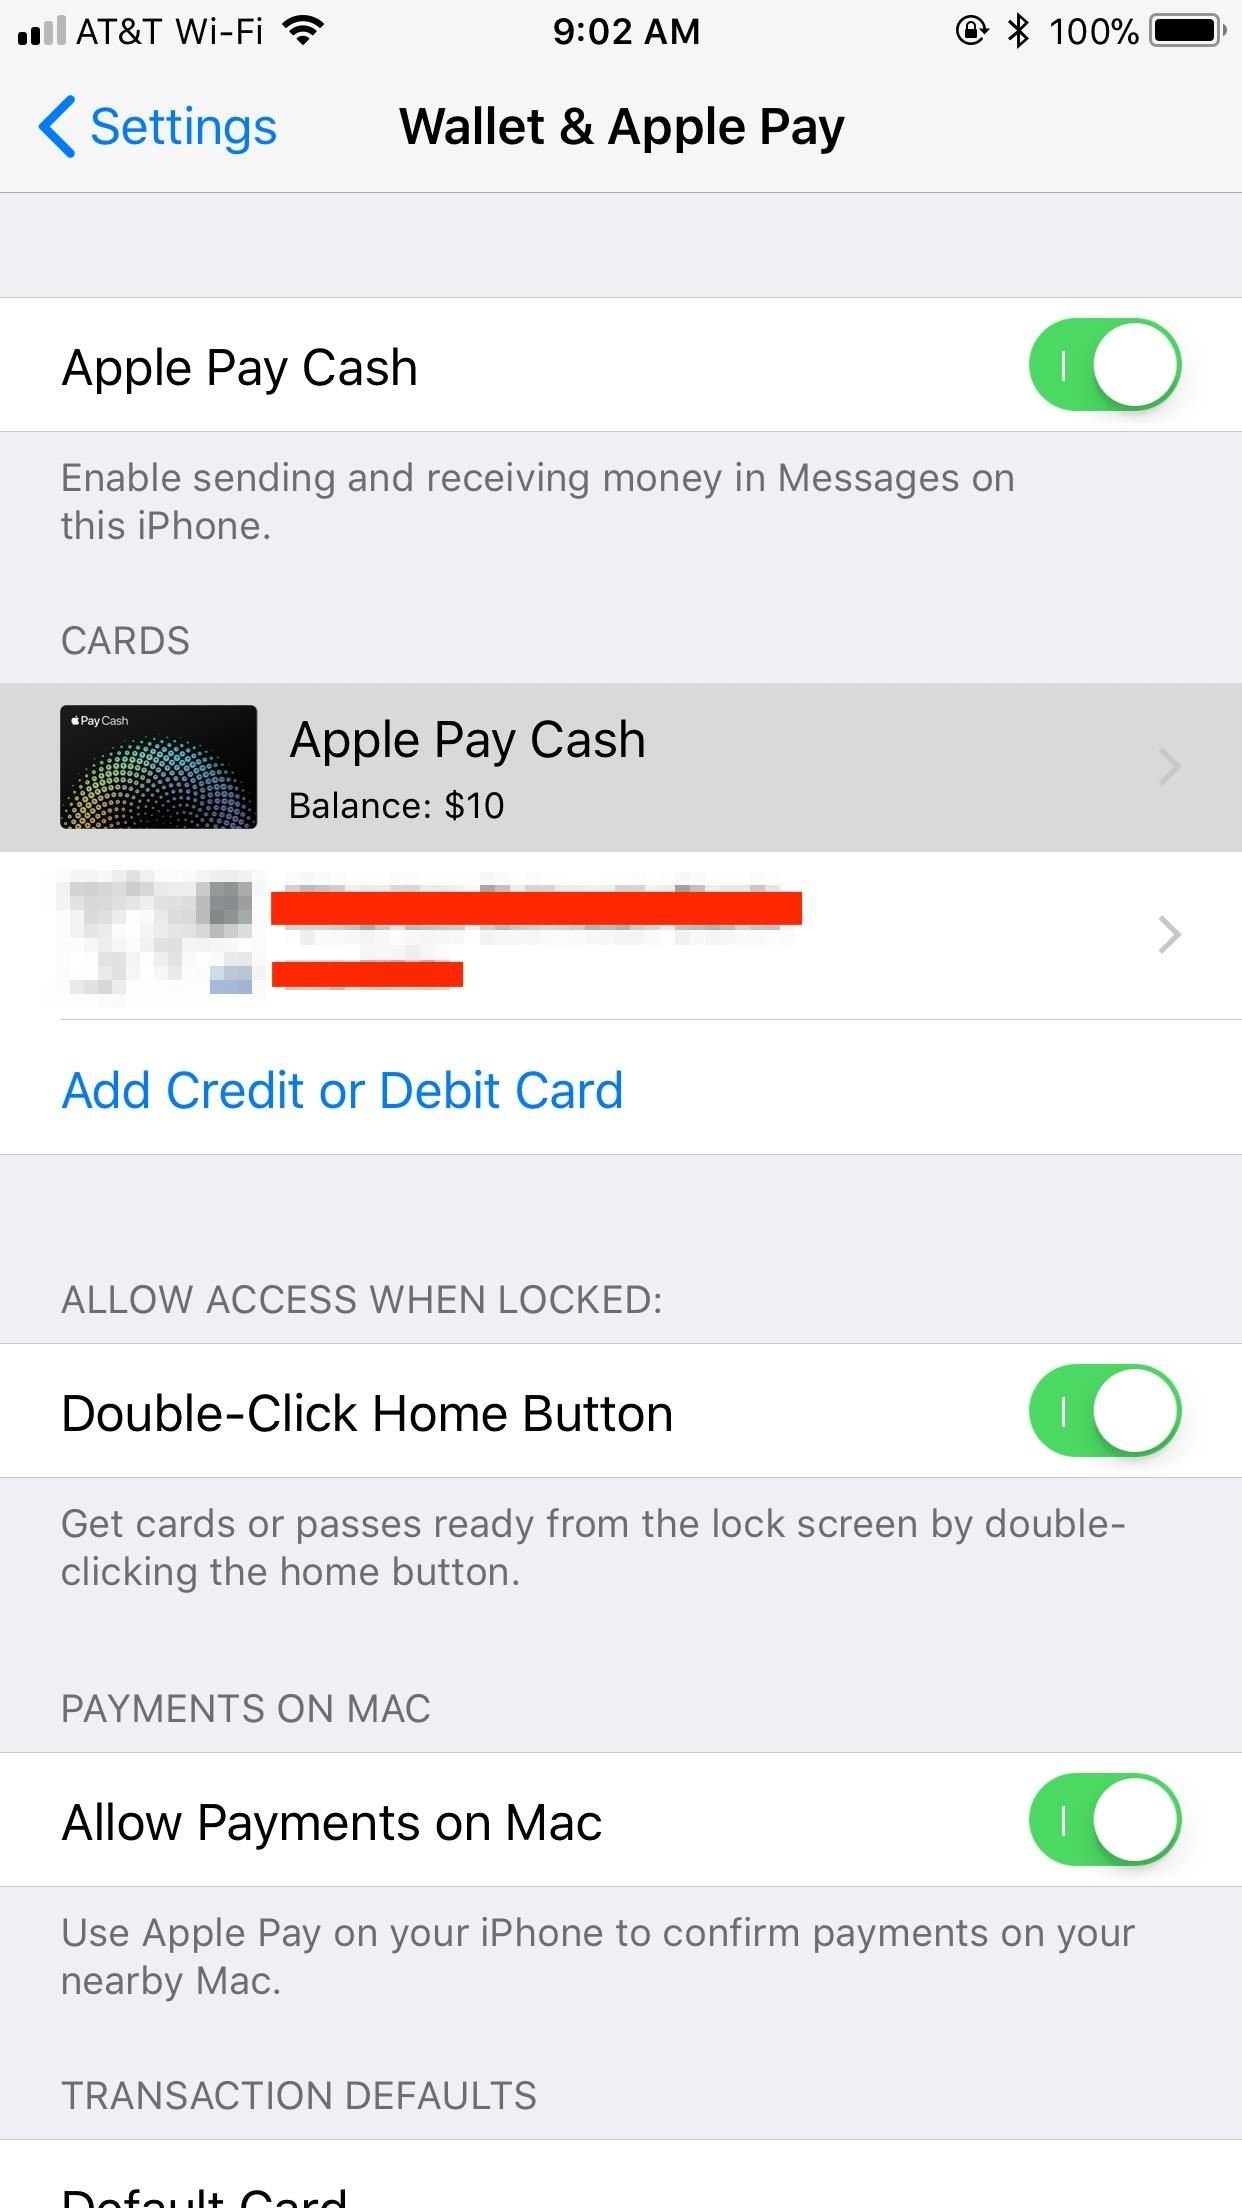 Apple Pay Cash 101: How to Add Money to Your Card Balance